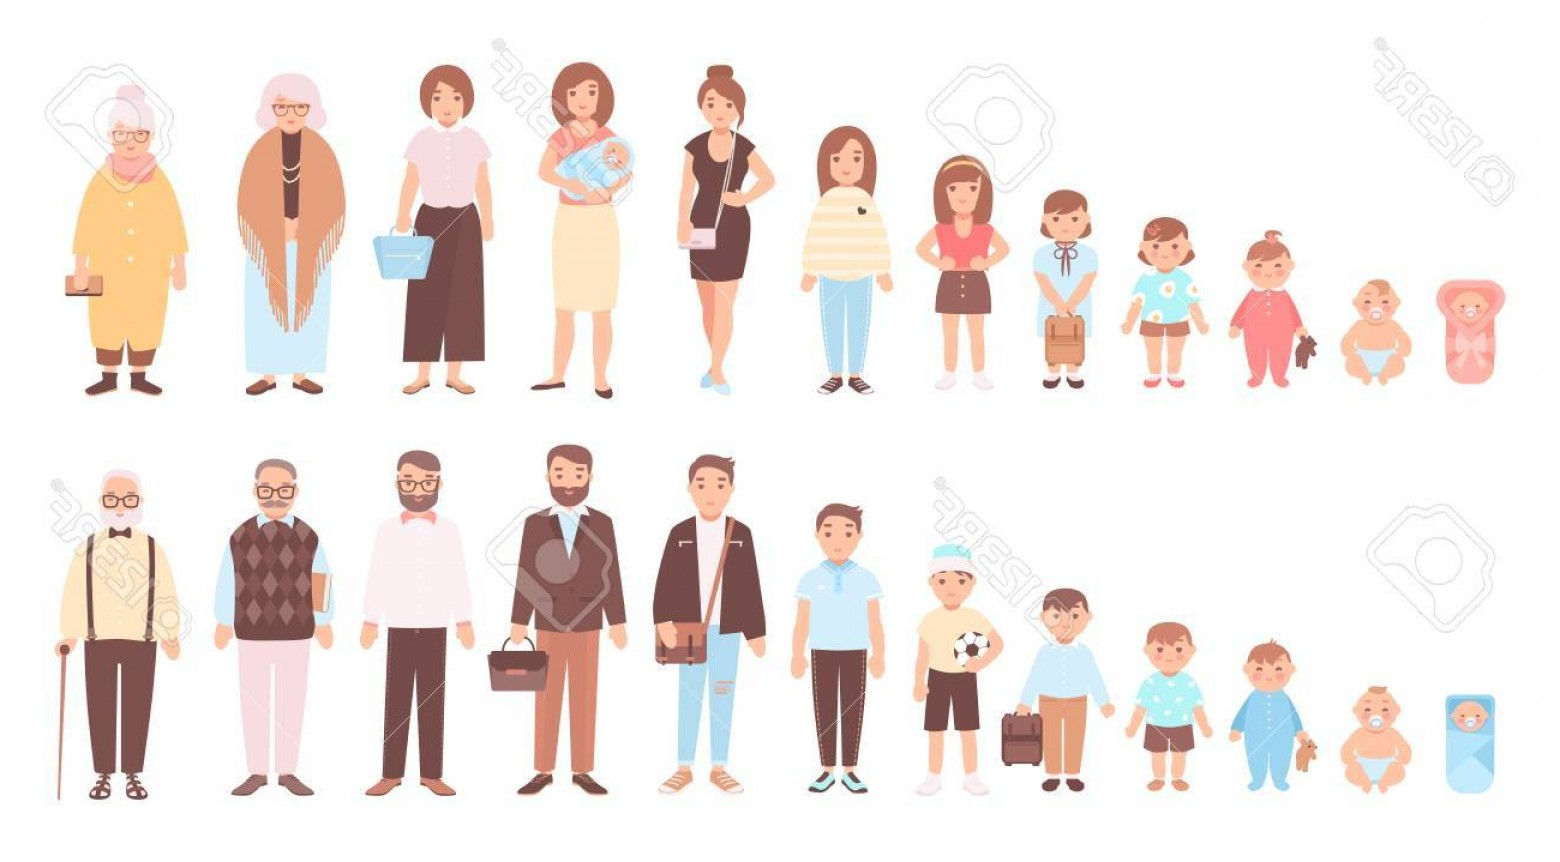 Growth Vector People: Photostock Vector Concept Of Life Cycles Of Man And Woman Visualization Of Stages Of Human Body Growth Development And